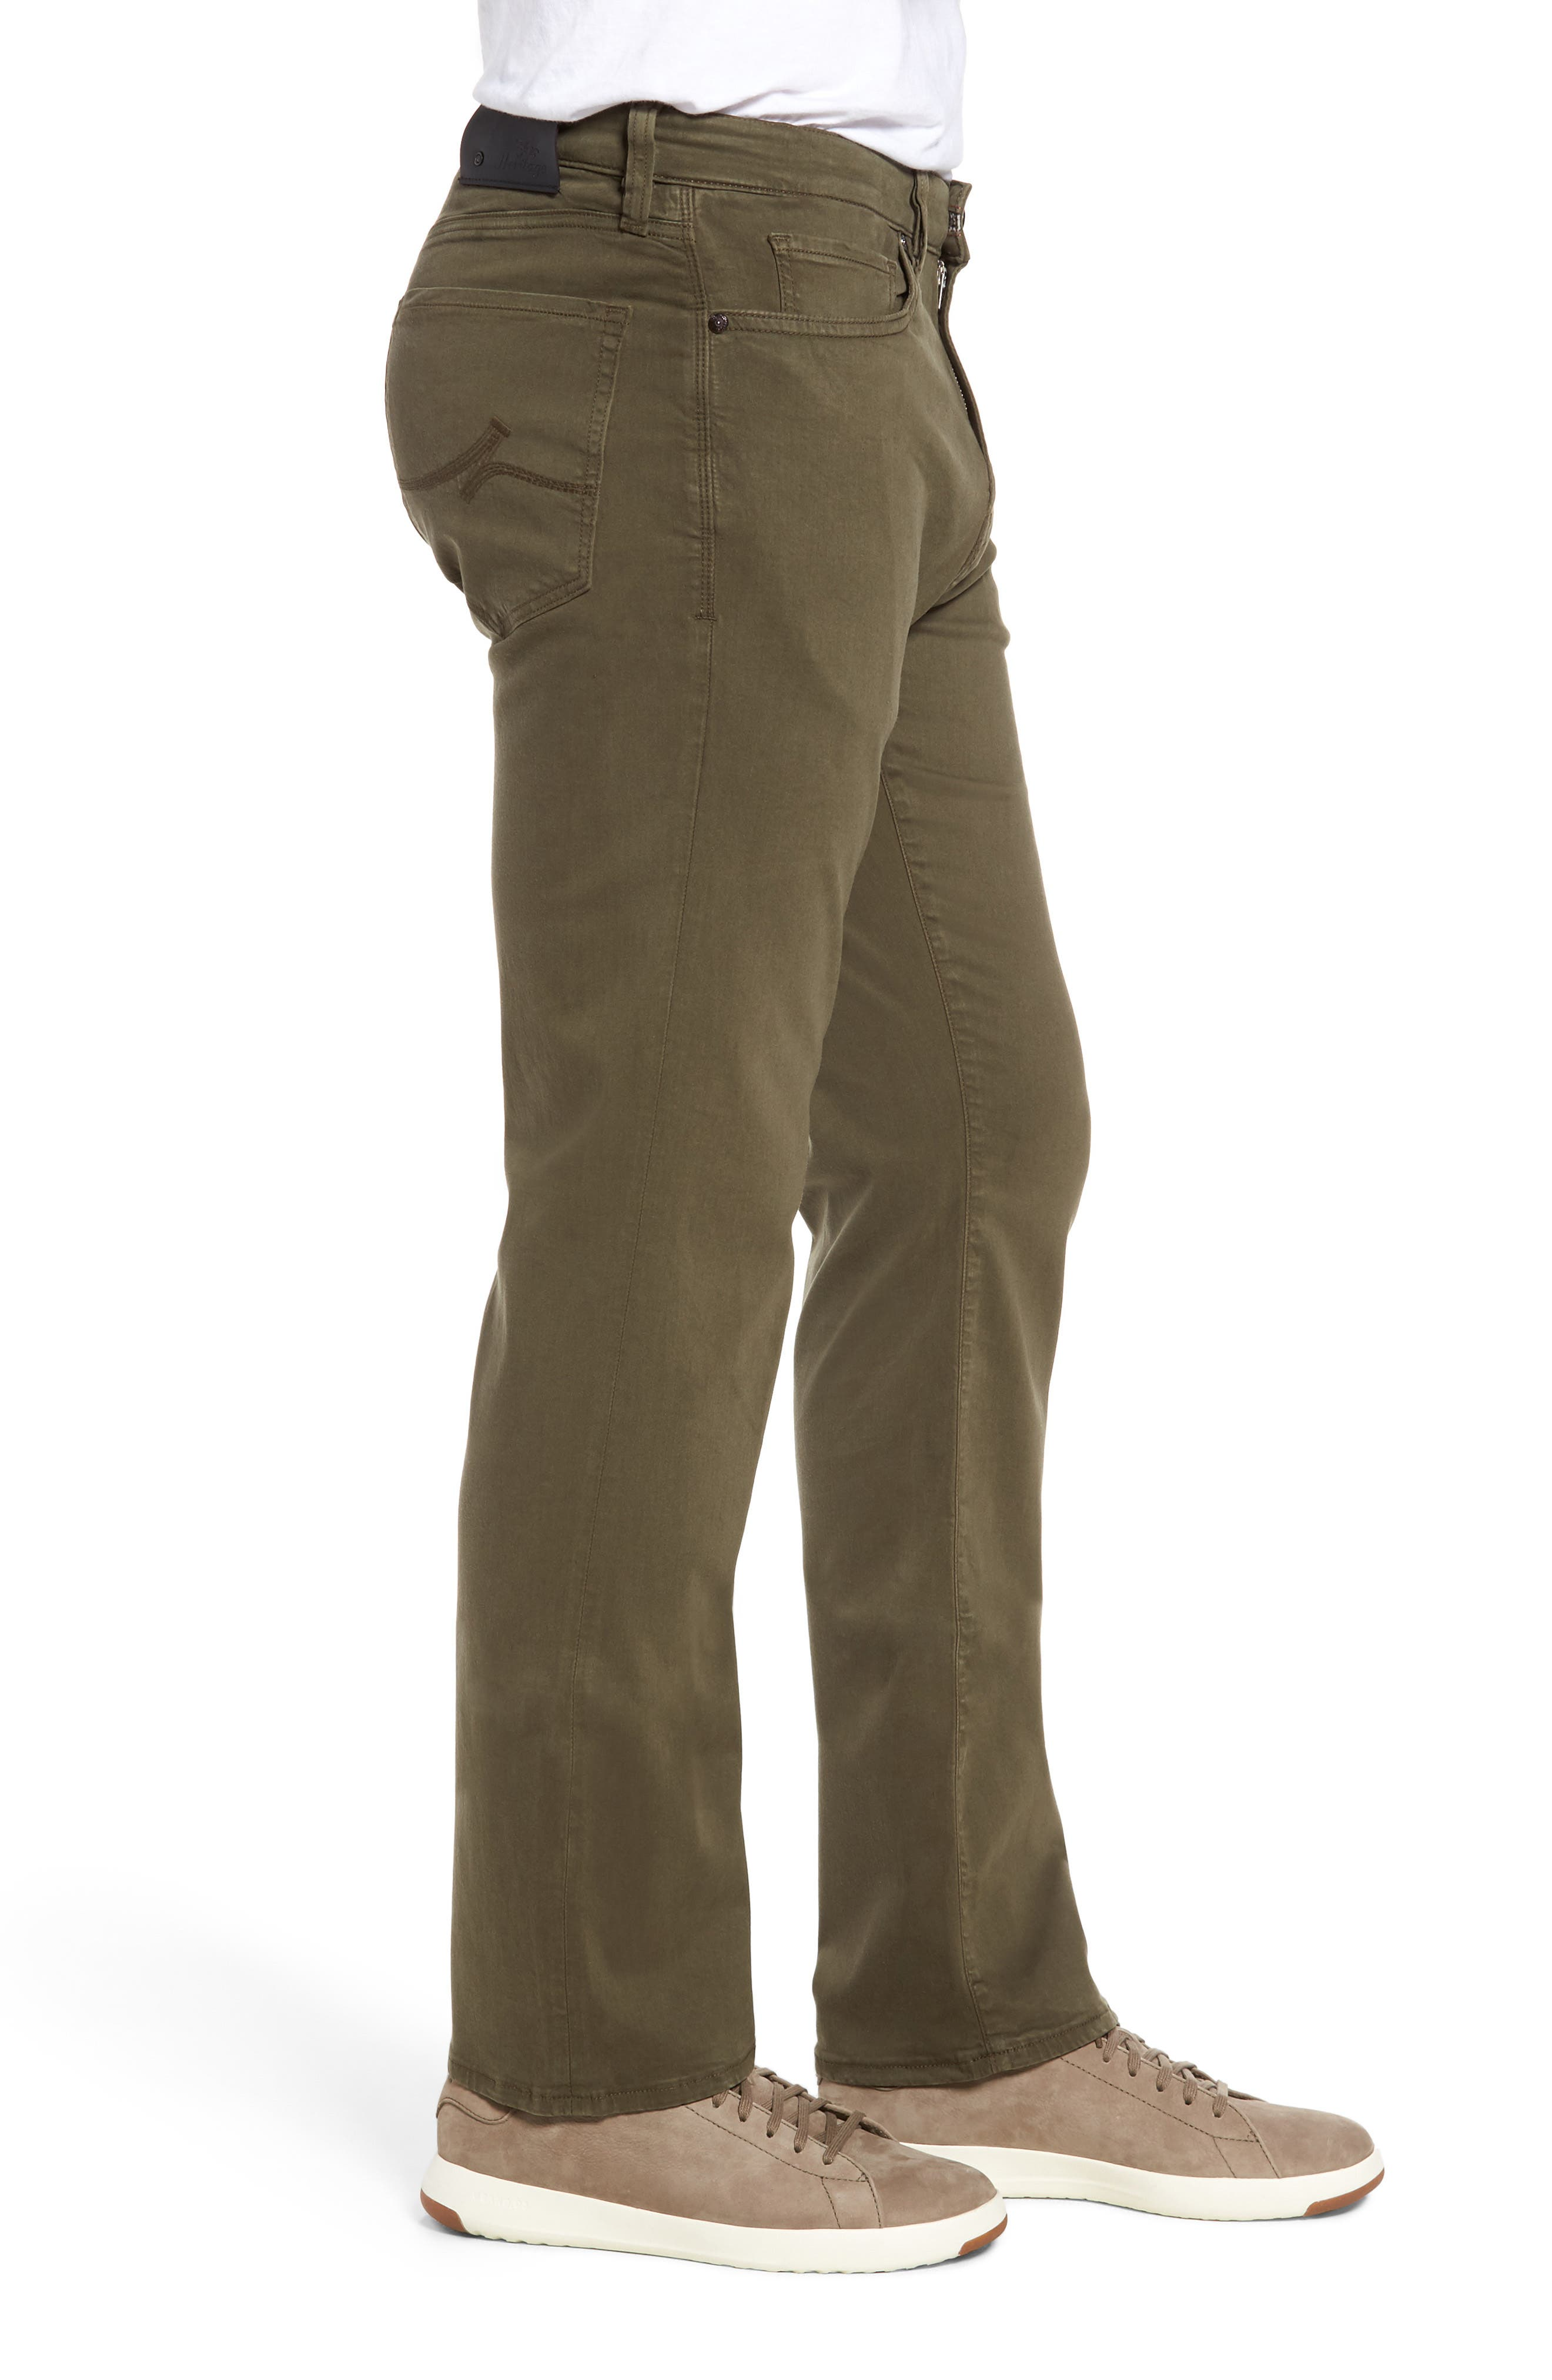 Charisma Relaxed Fit Pants,                             Alternate thumbnail 3, color,                             Olive Twill